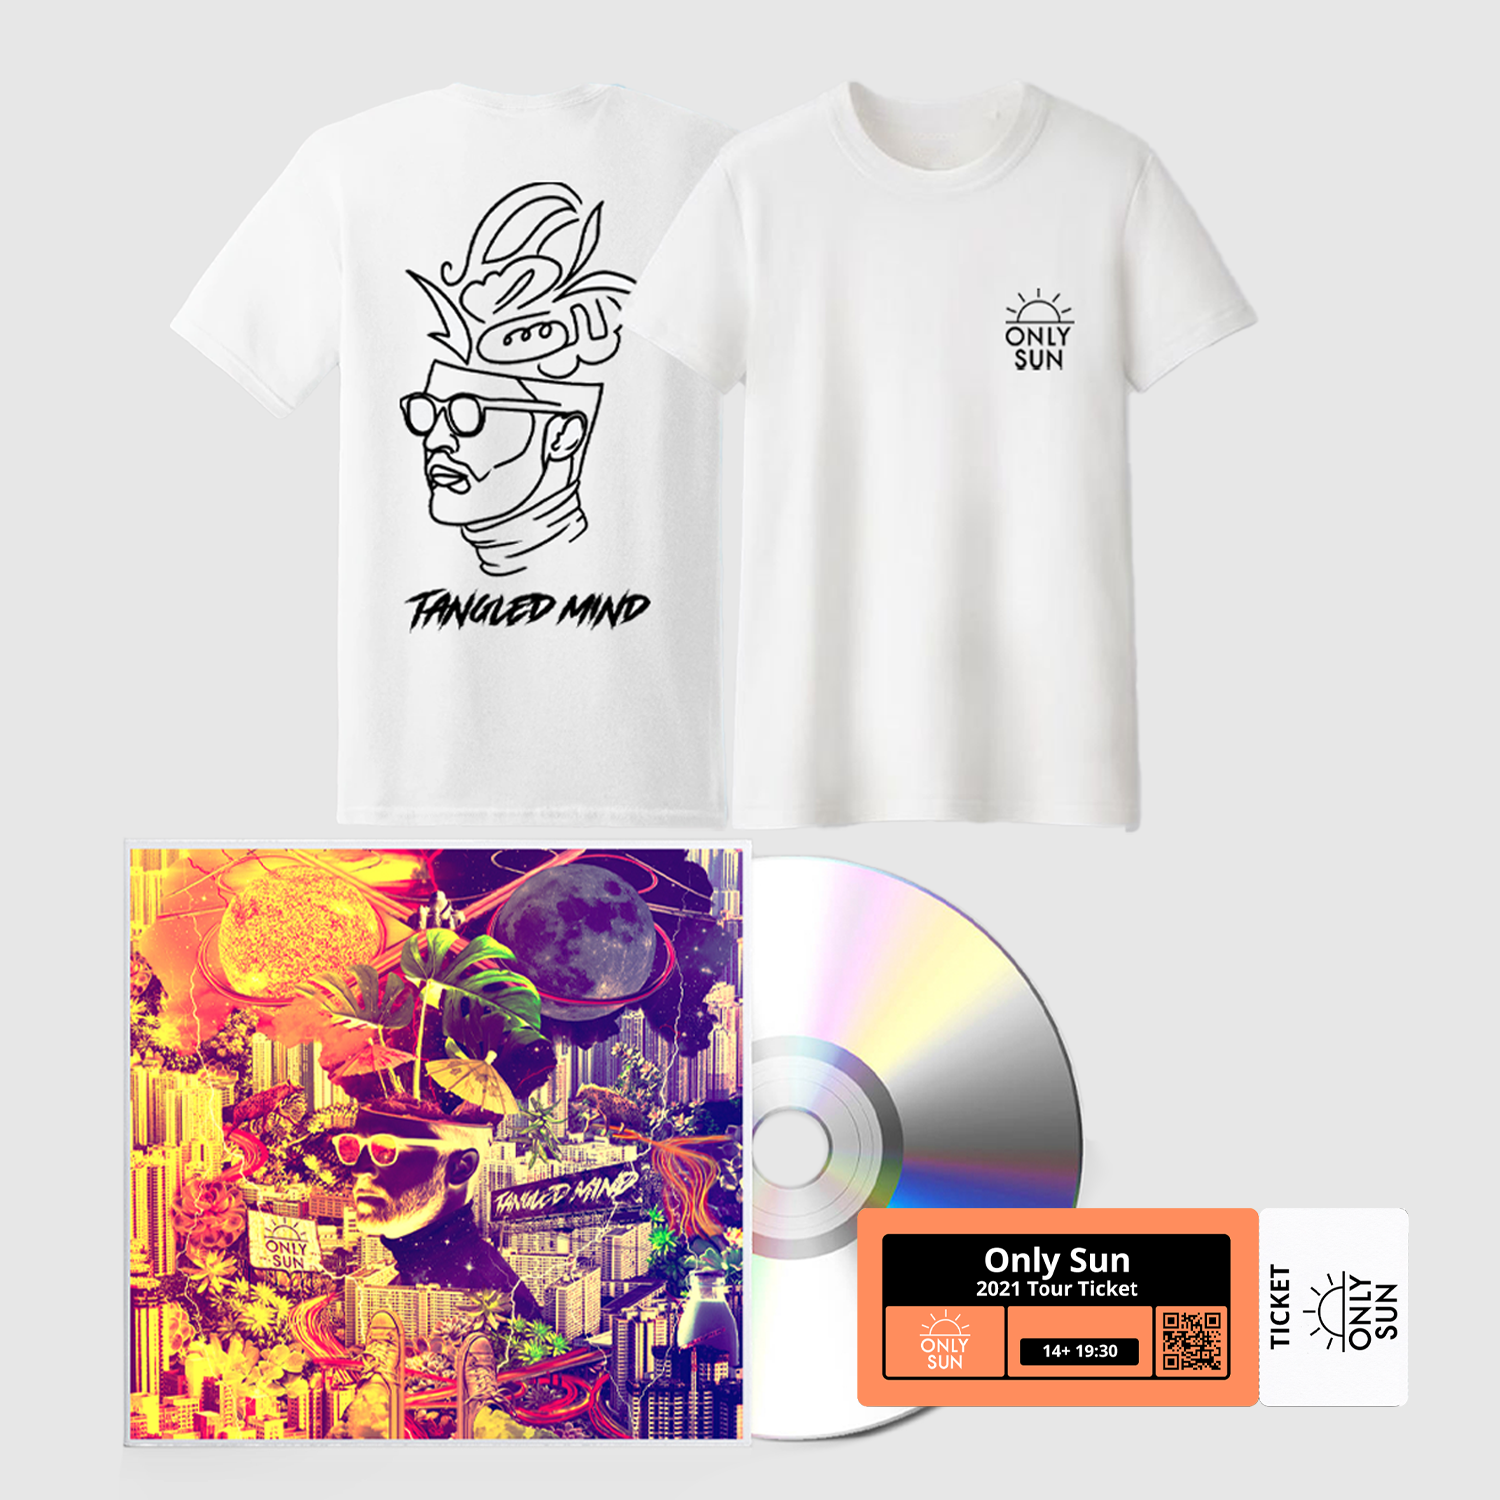 Buy Online Only Sun - Tangled Mind CD + White T-Shirt + 2021 Tour Ticket